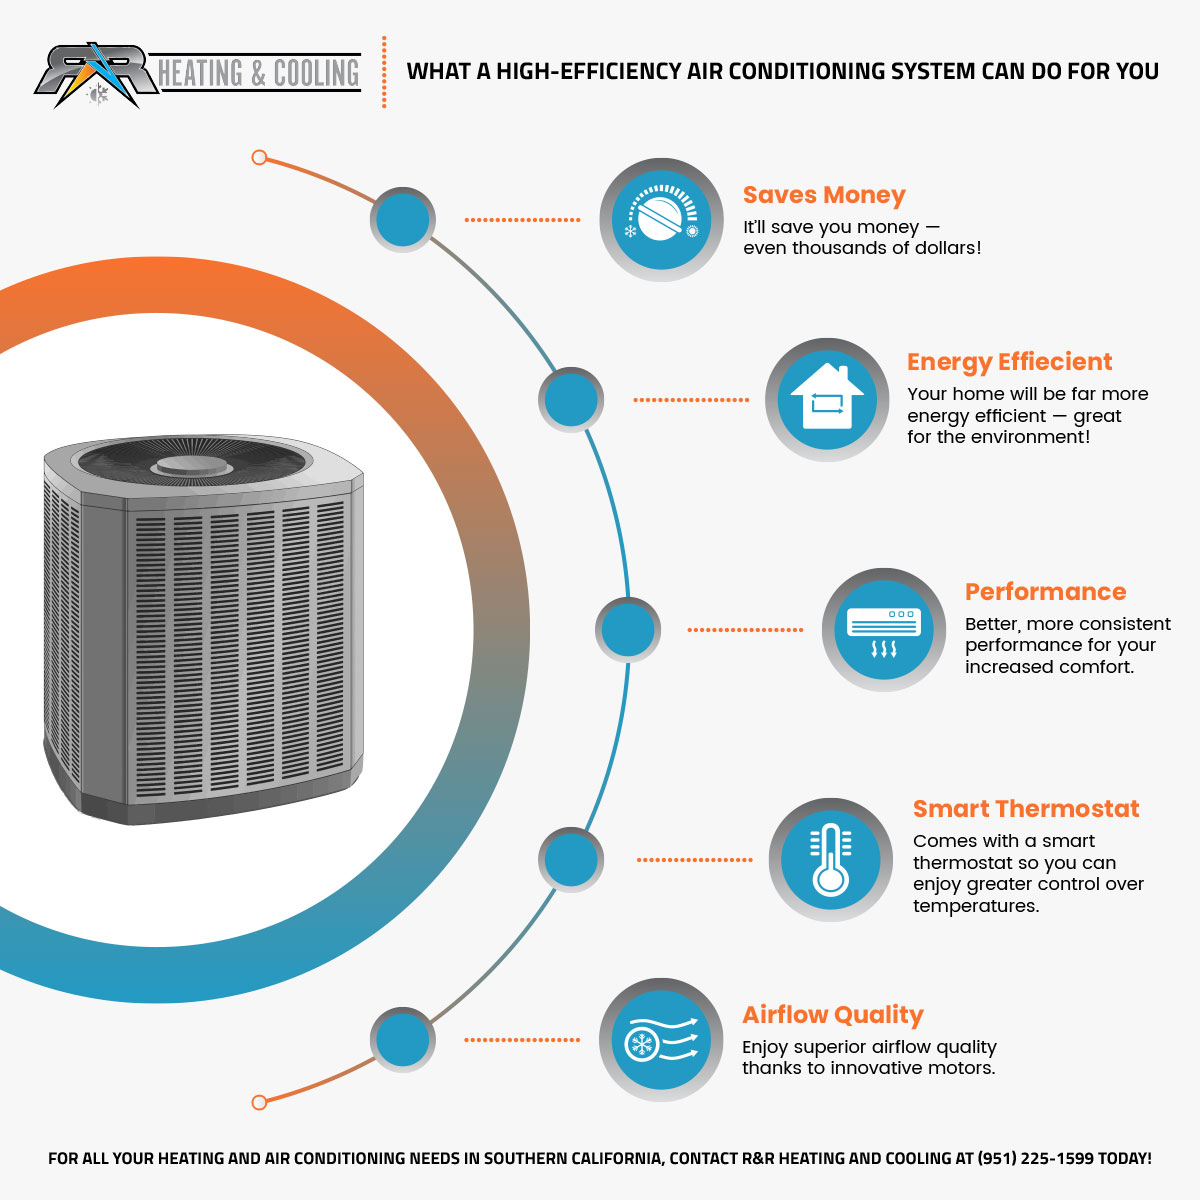 What-A-High-Efficiency-Air-Conditioning-System-Can-Do-For-You-Infographic